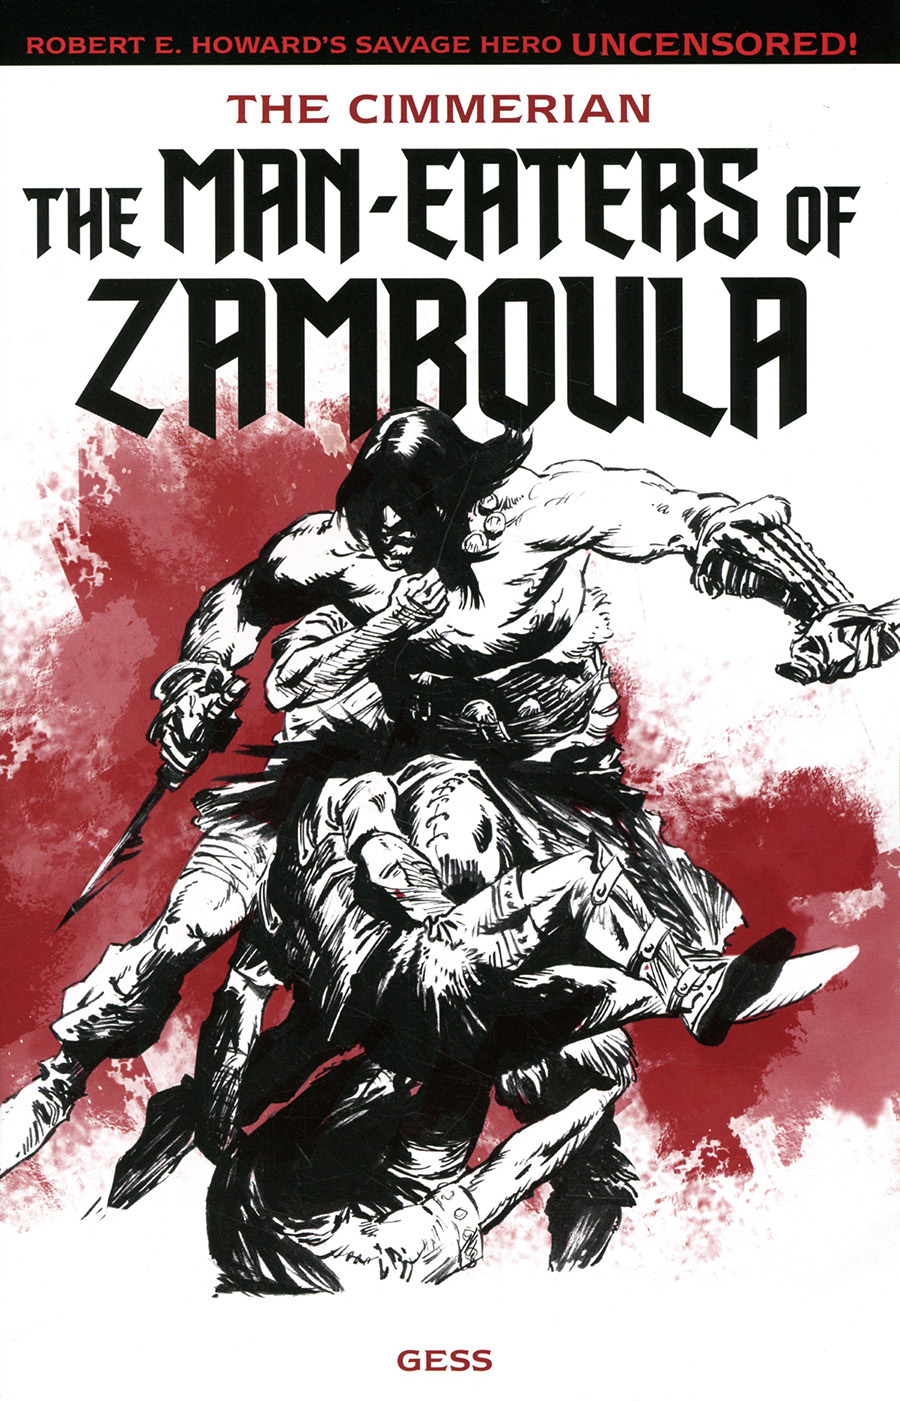 Cimmerian Man-Eaters Of Zamboula #1 Cover D Variant Robin Recht Wraparound Cover